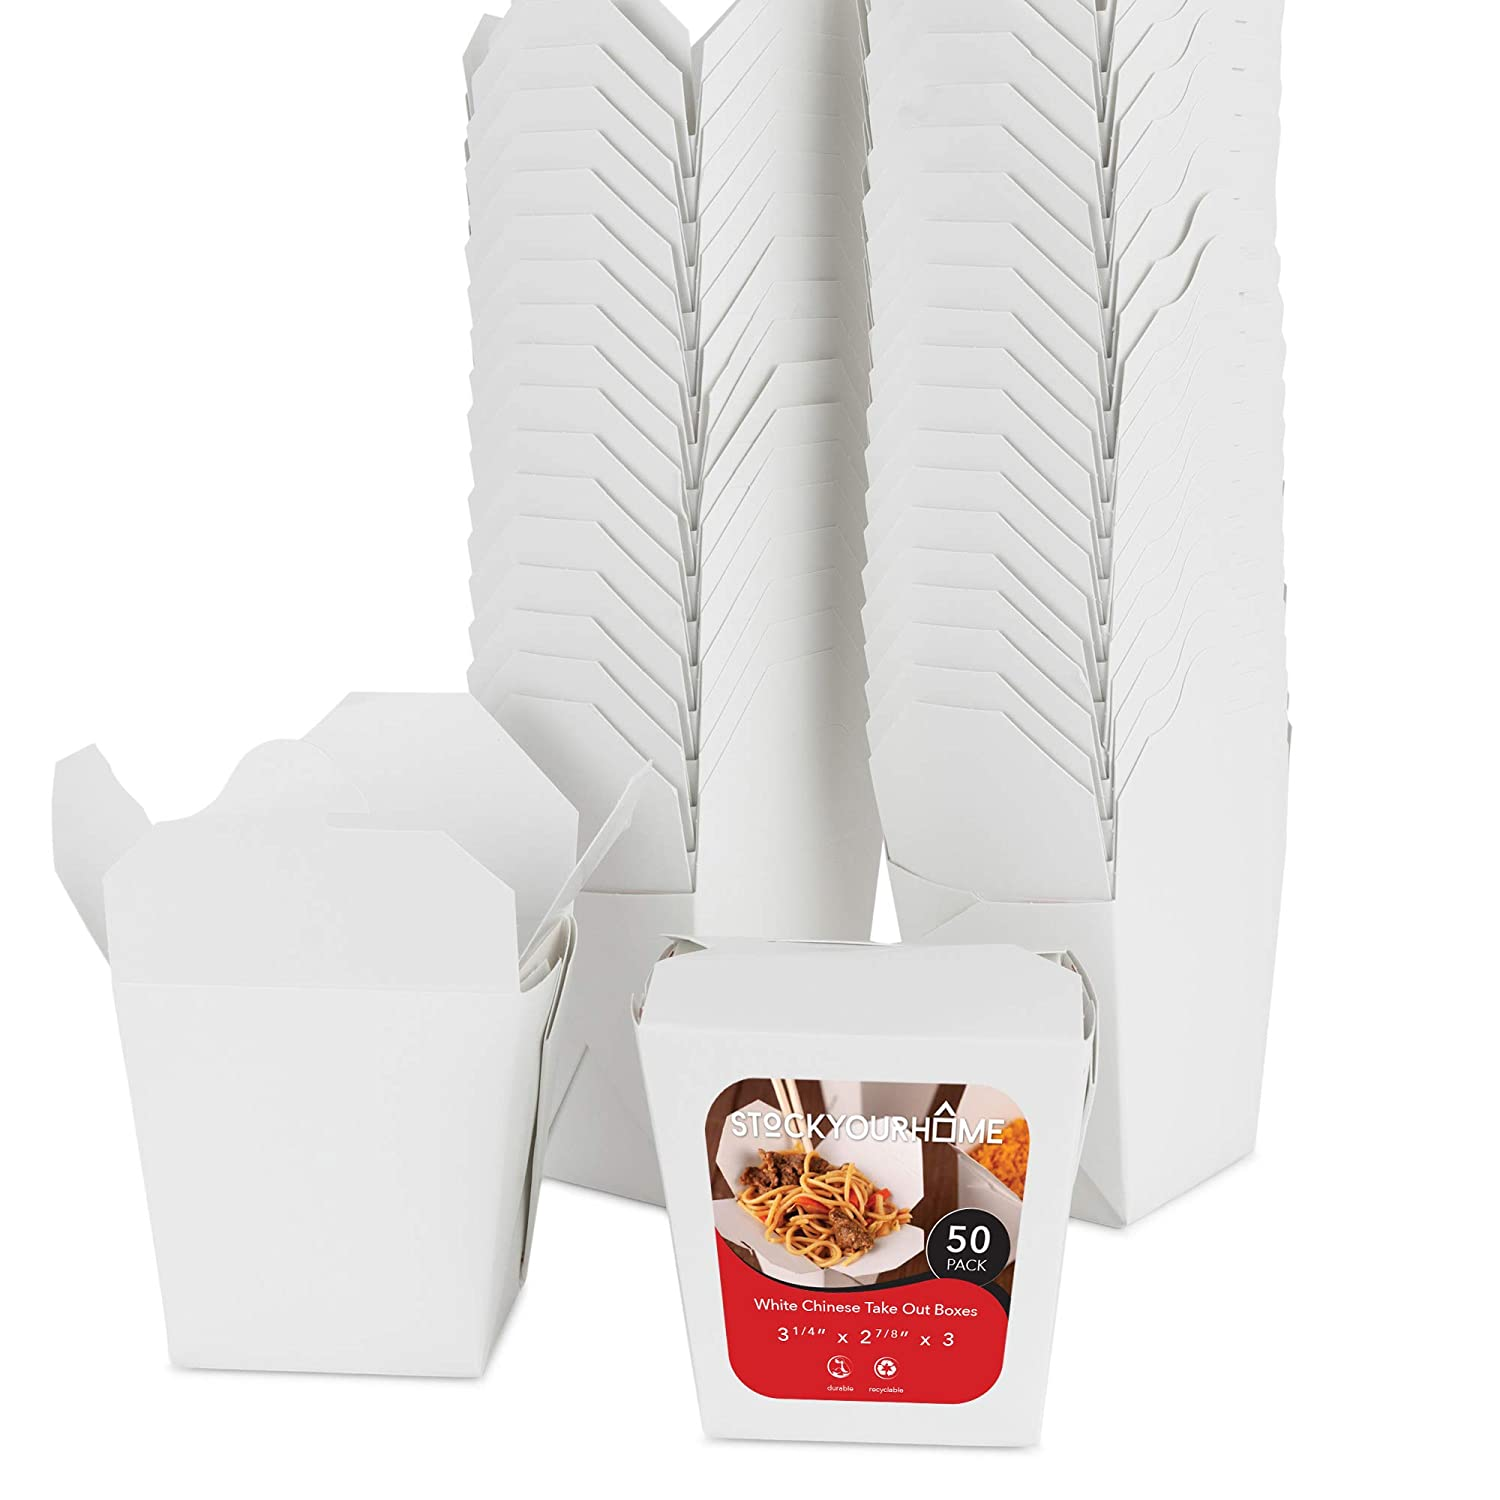 Paper Surprise price Take Out Recommendation Food Containers White 16 Oz Chinese Microwaveable